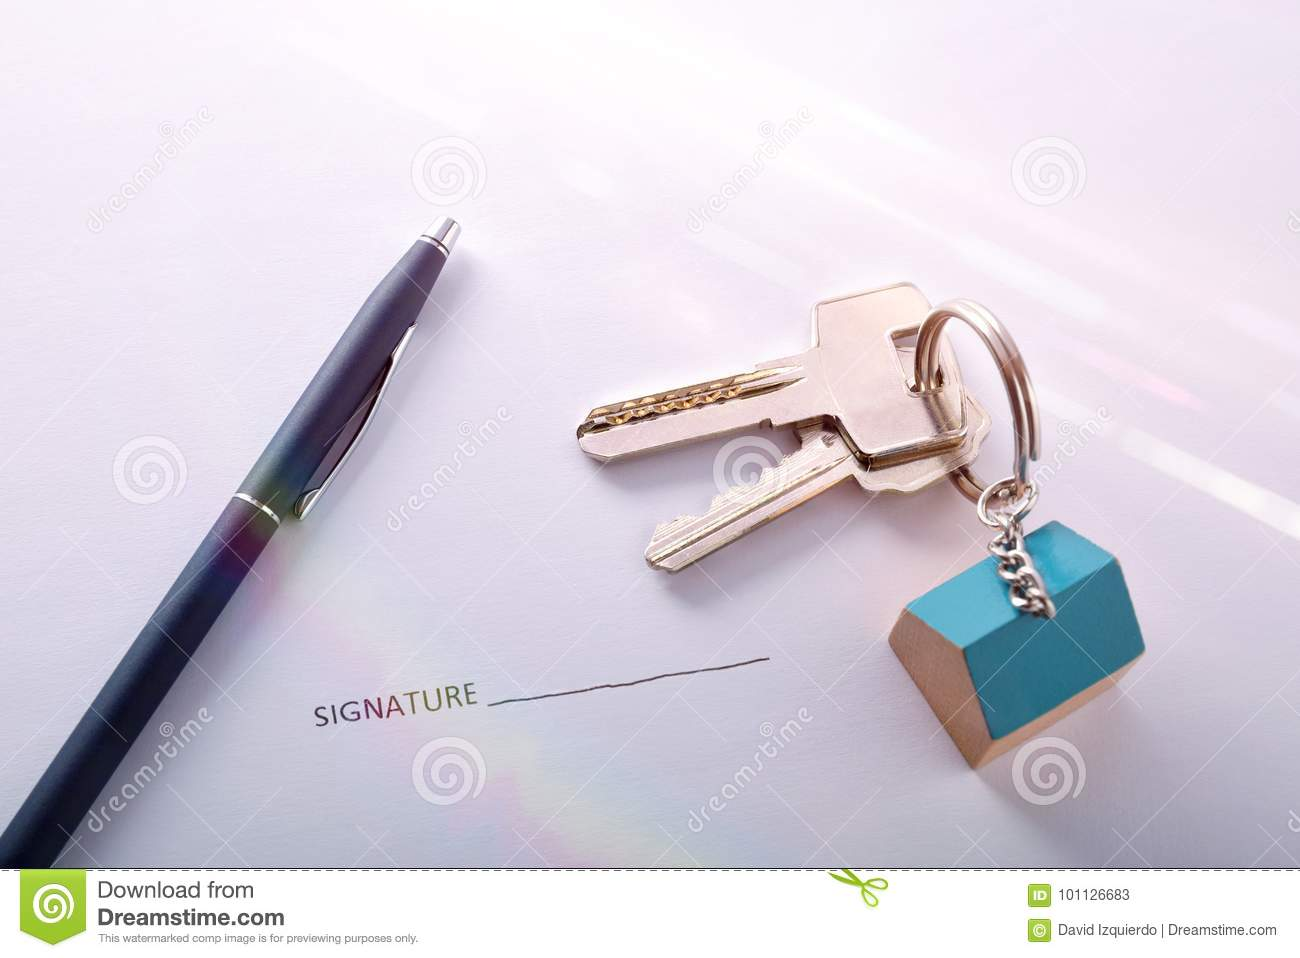 Concept of contract signing for purchase of a house